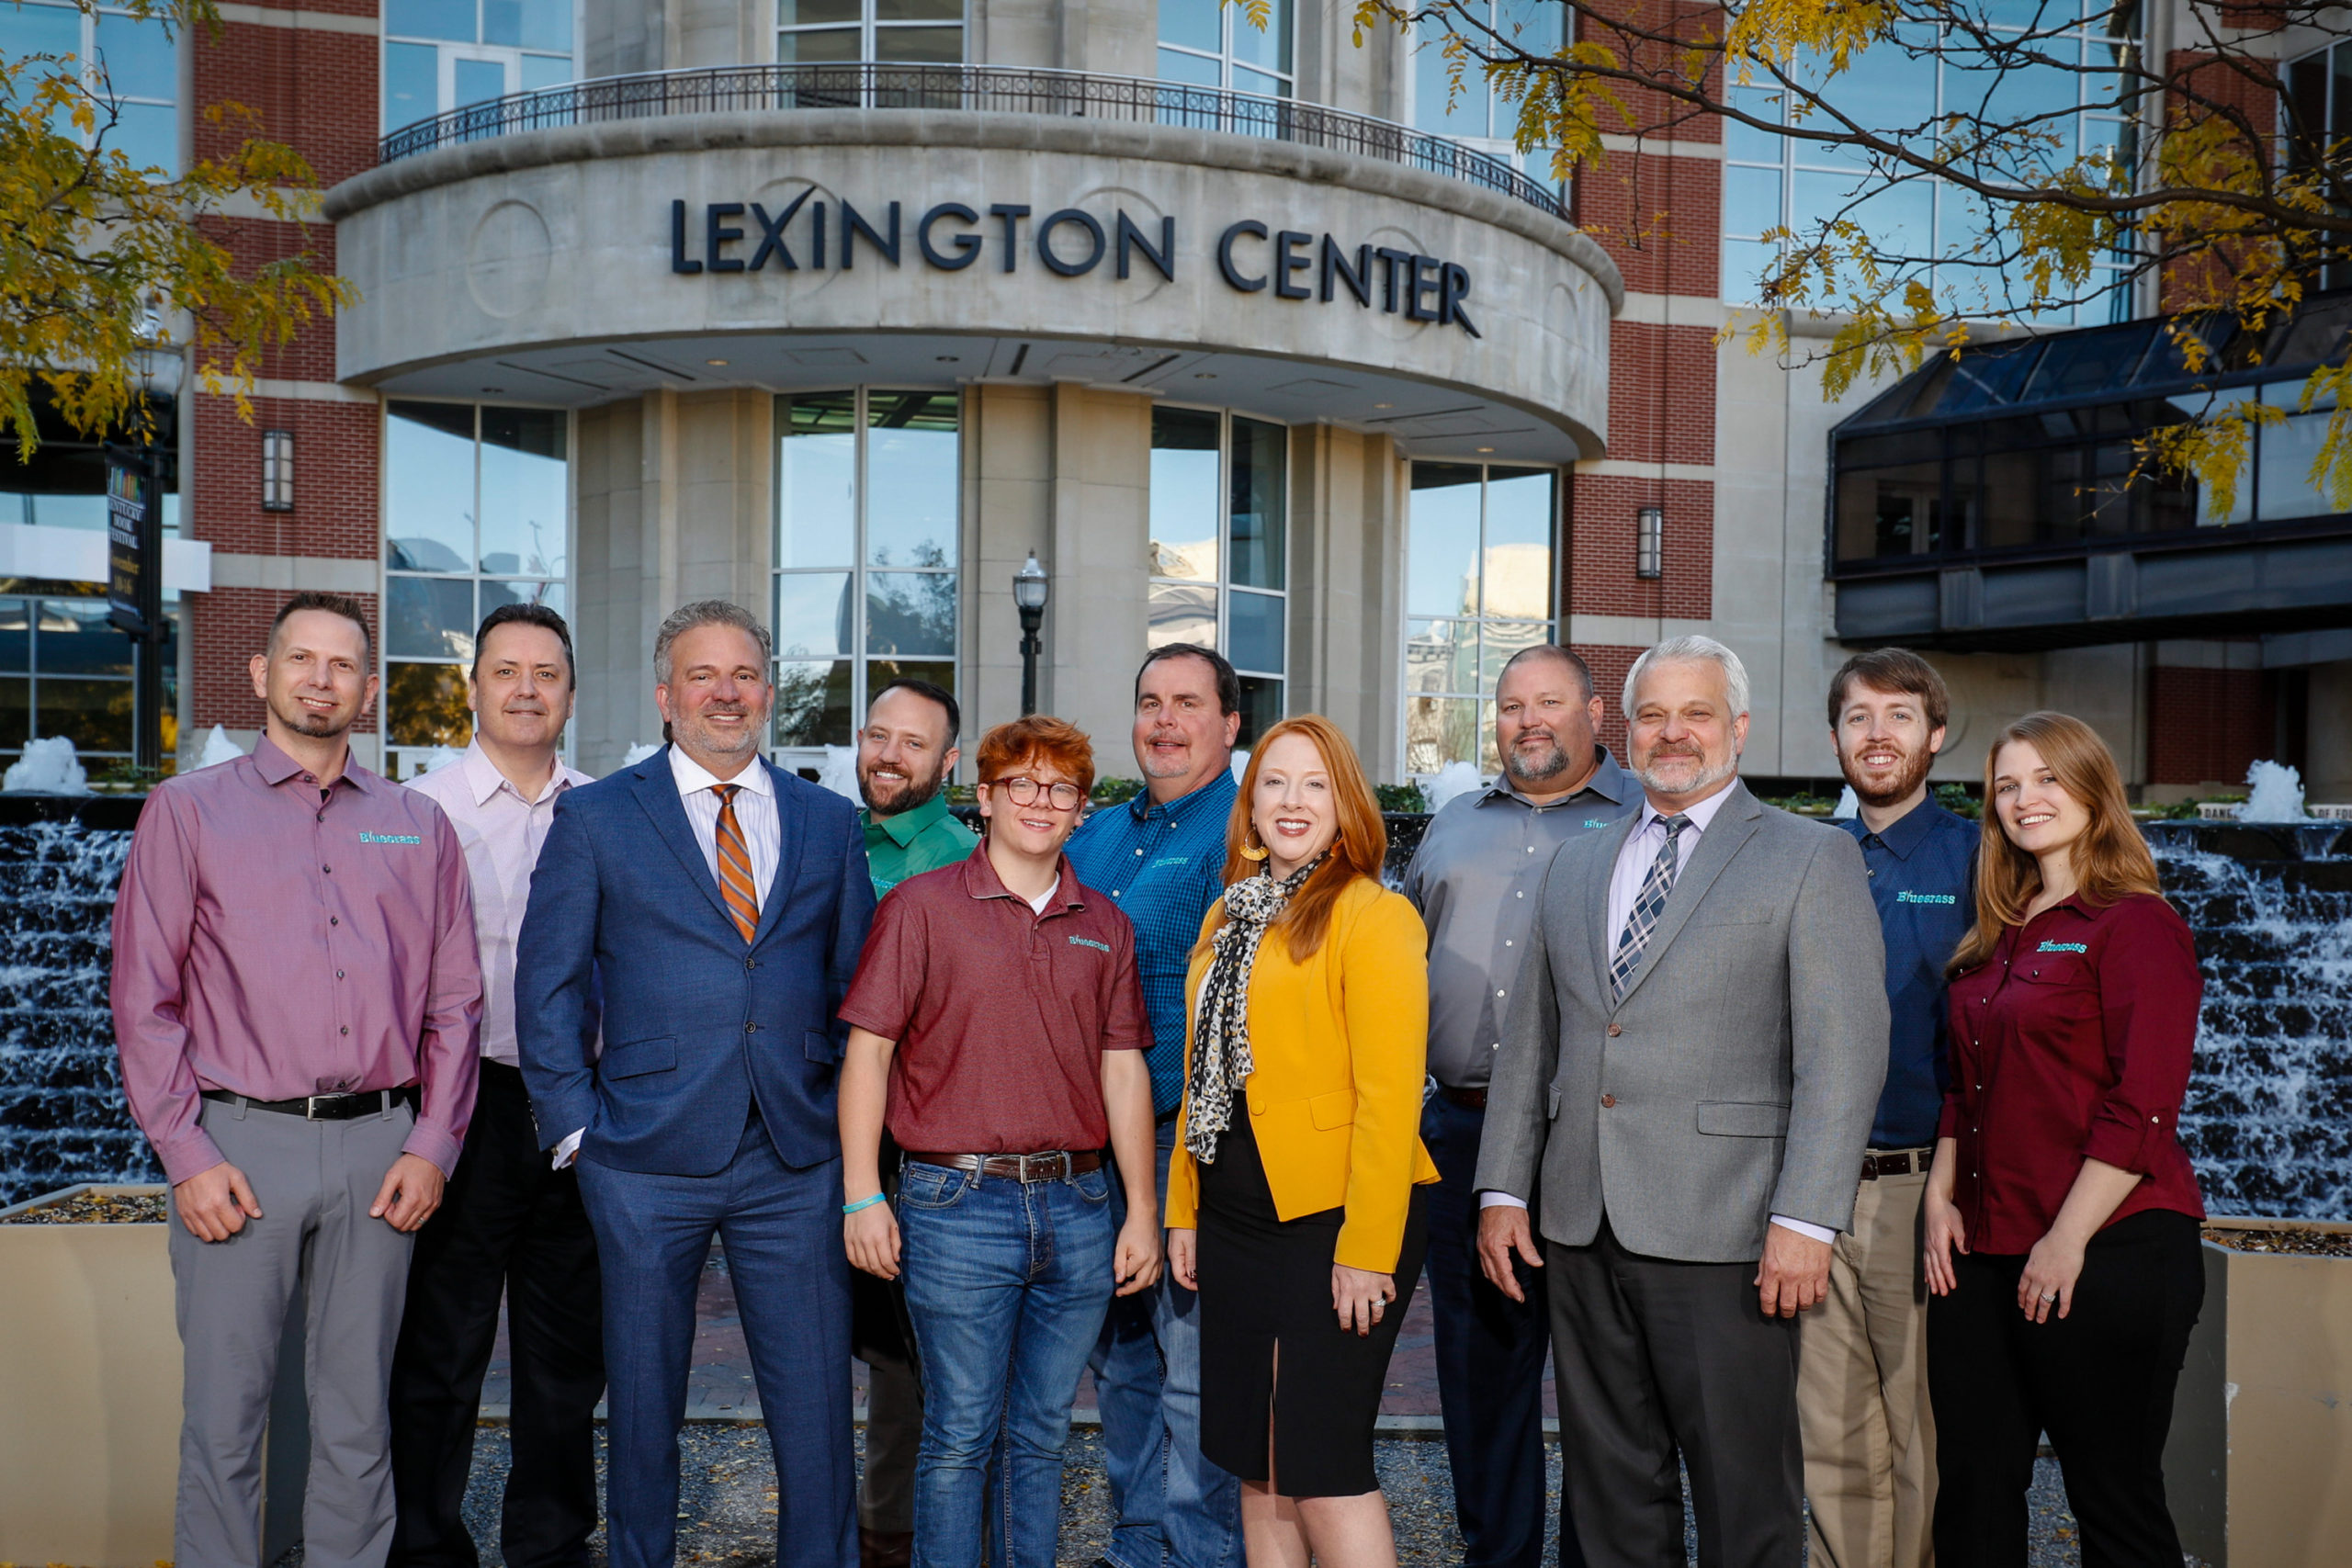 Bluegrass Educational Techonologies, LLC at Triangle park, Monday Oct. 28, 2019  in Lexington, Ky. Photo by Mark Mahan